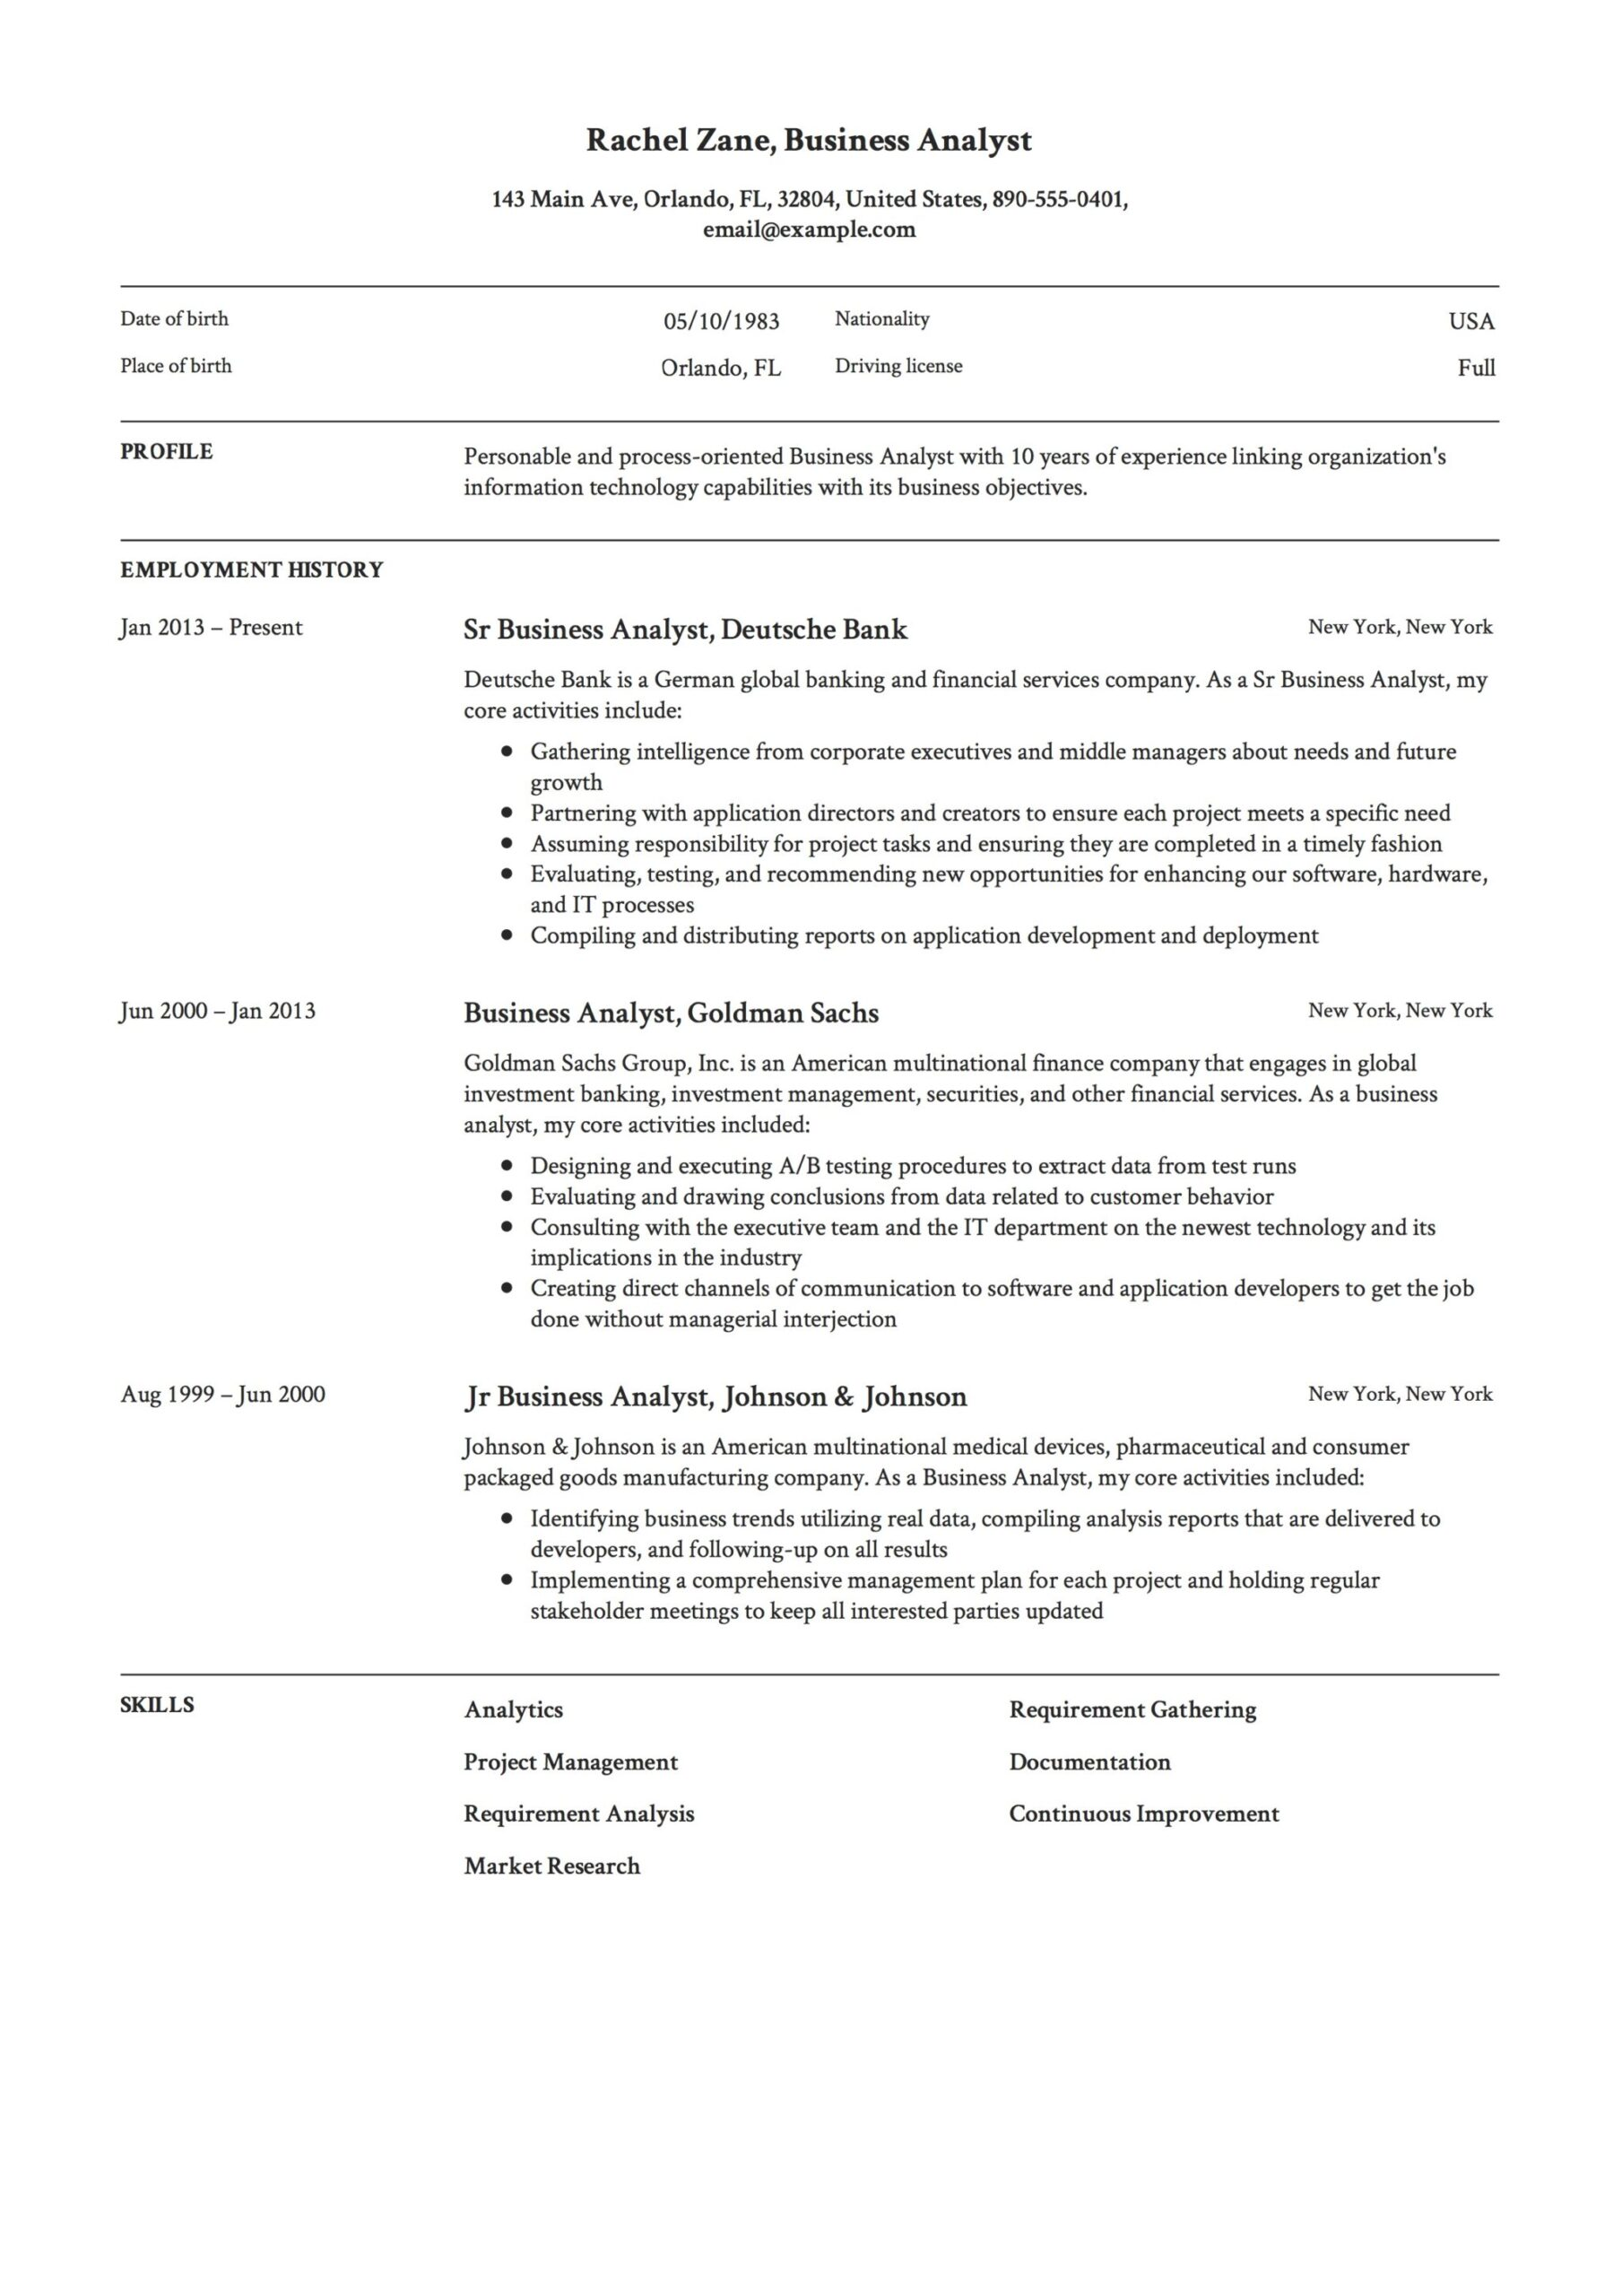 business analyst resume guide templates pdf free downloads format for fresher sample Resume Resume Format For Business Analyst Fresher